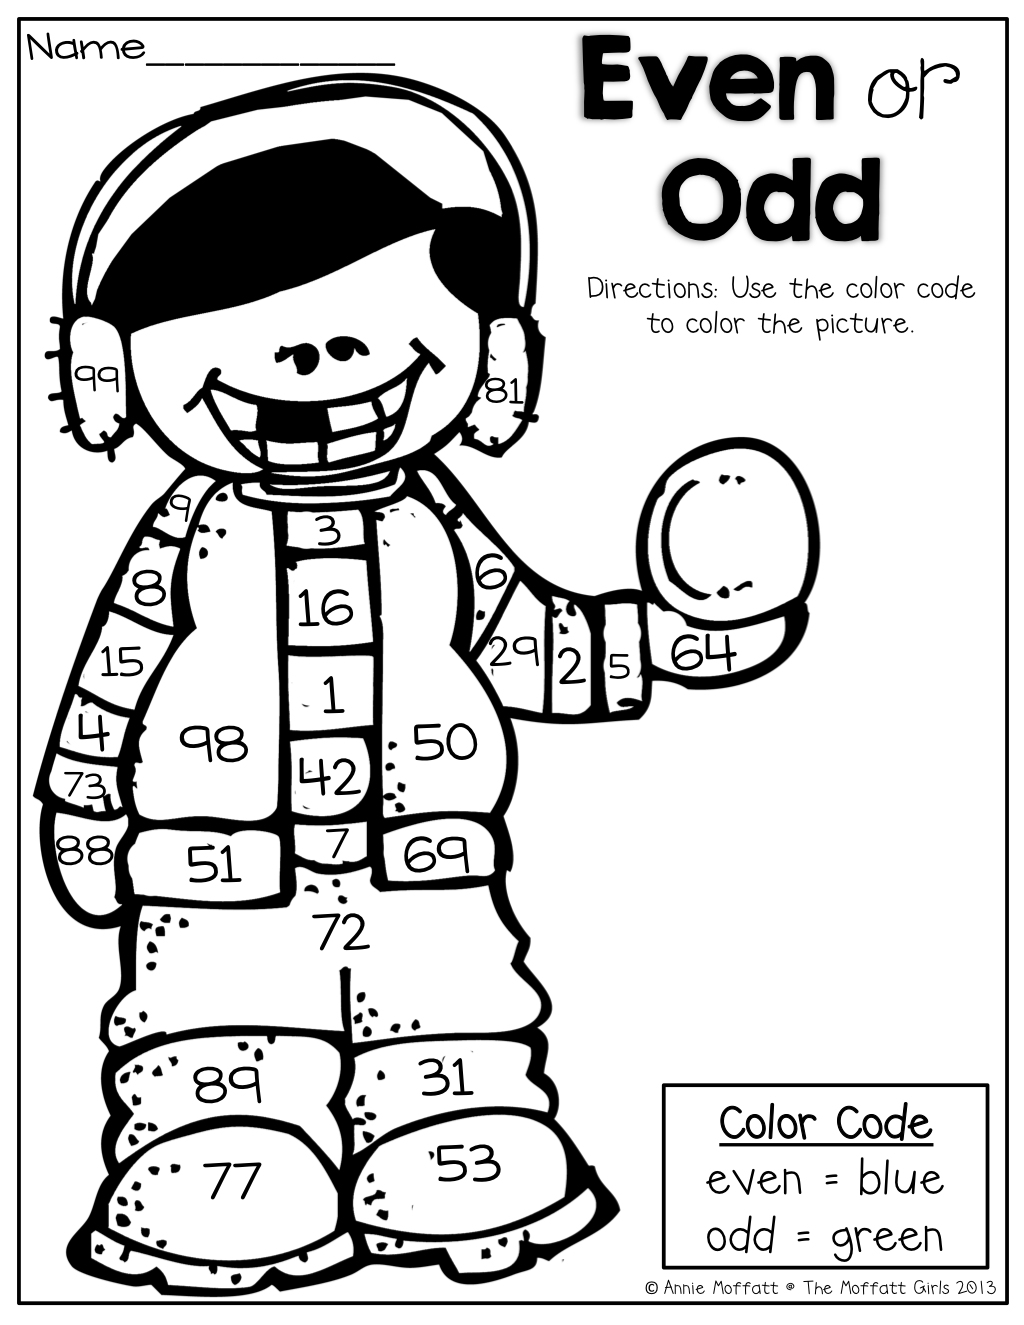 Even Or Odd Color The Picture According To The Color Code